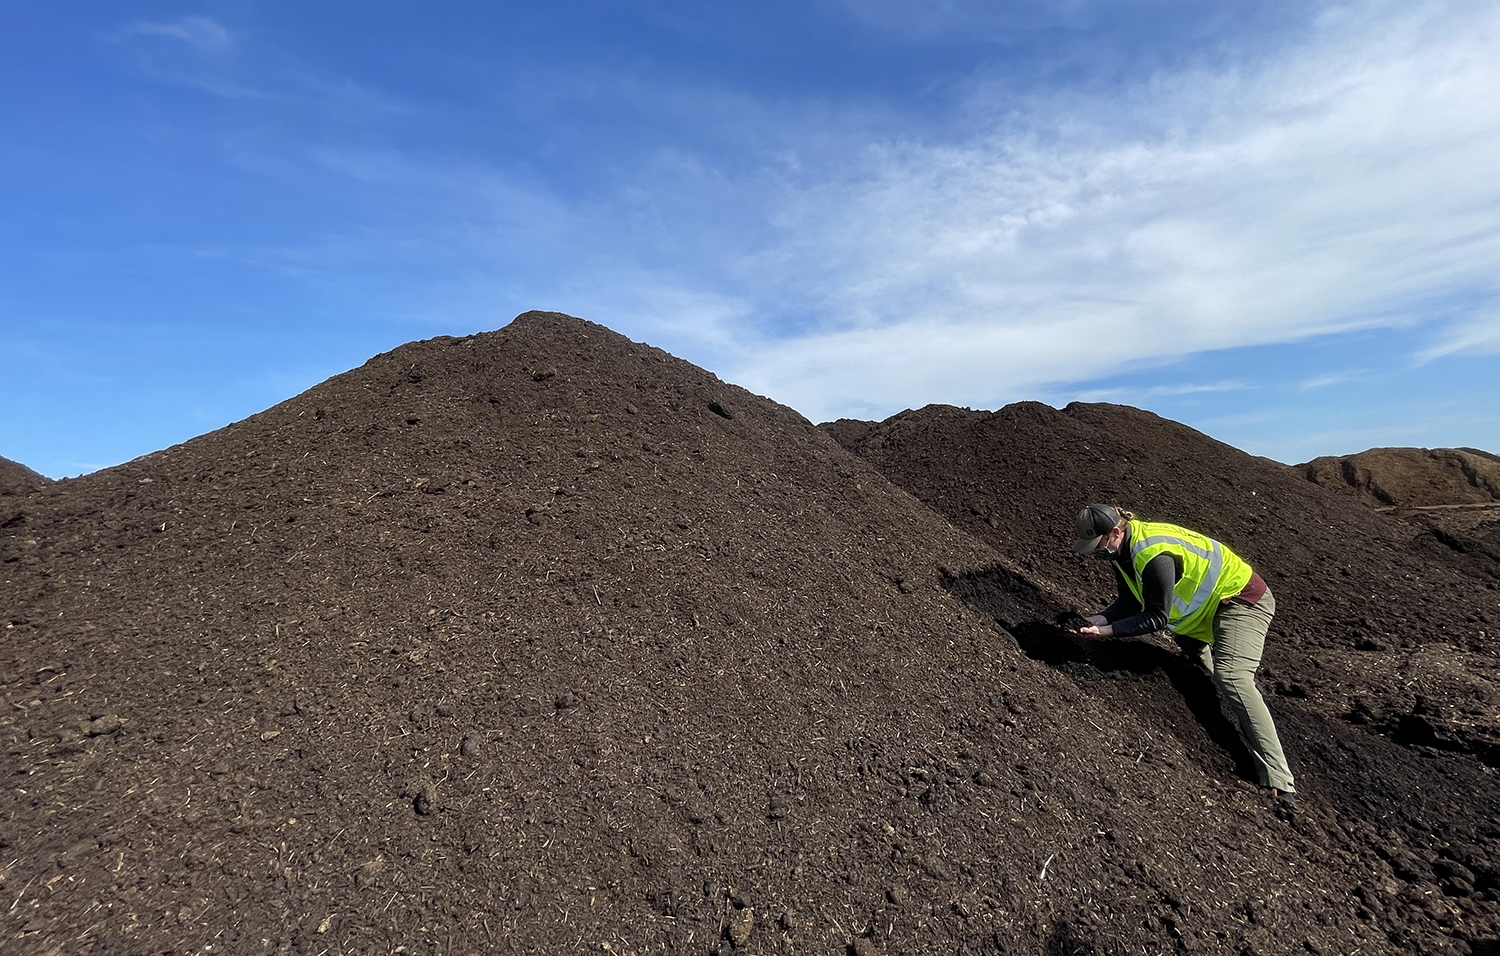 A large pile of compost against a bright blue sky and a man in a yellow jacket